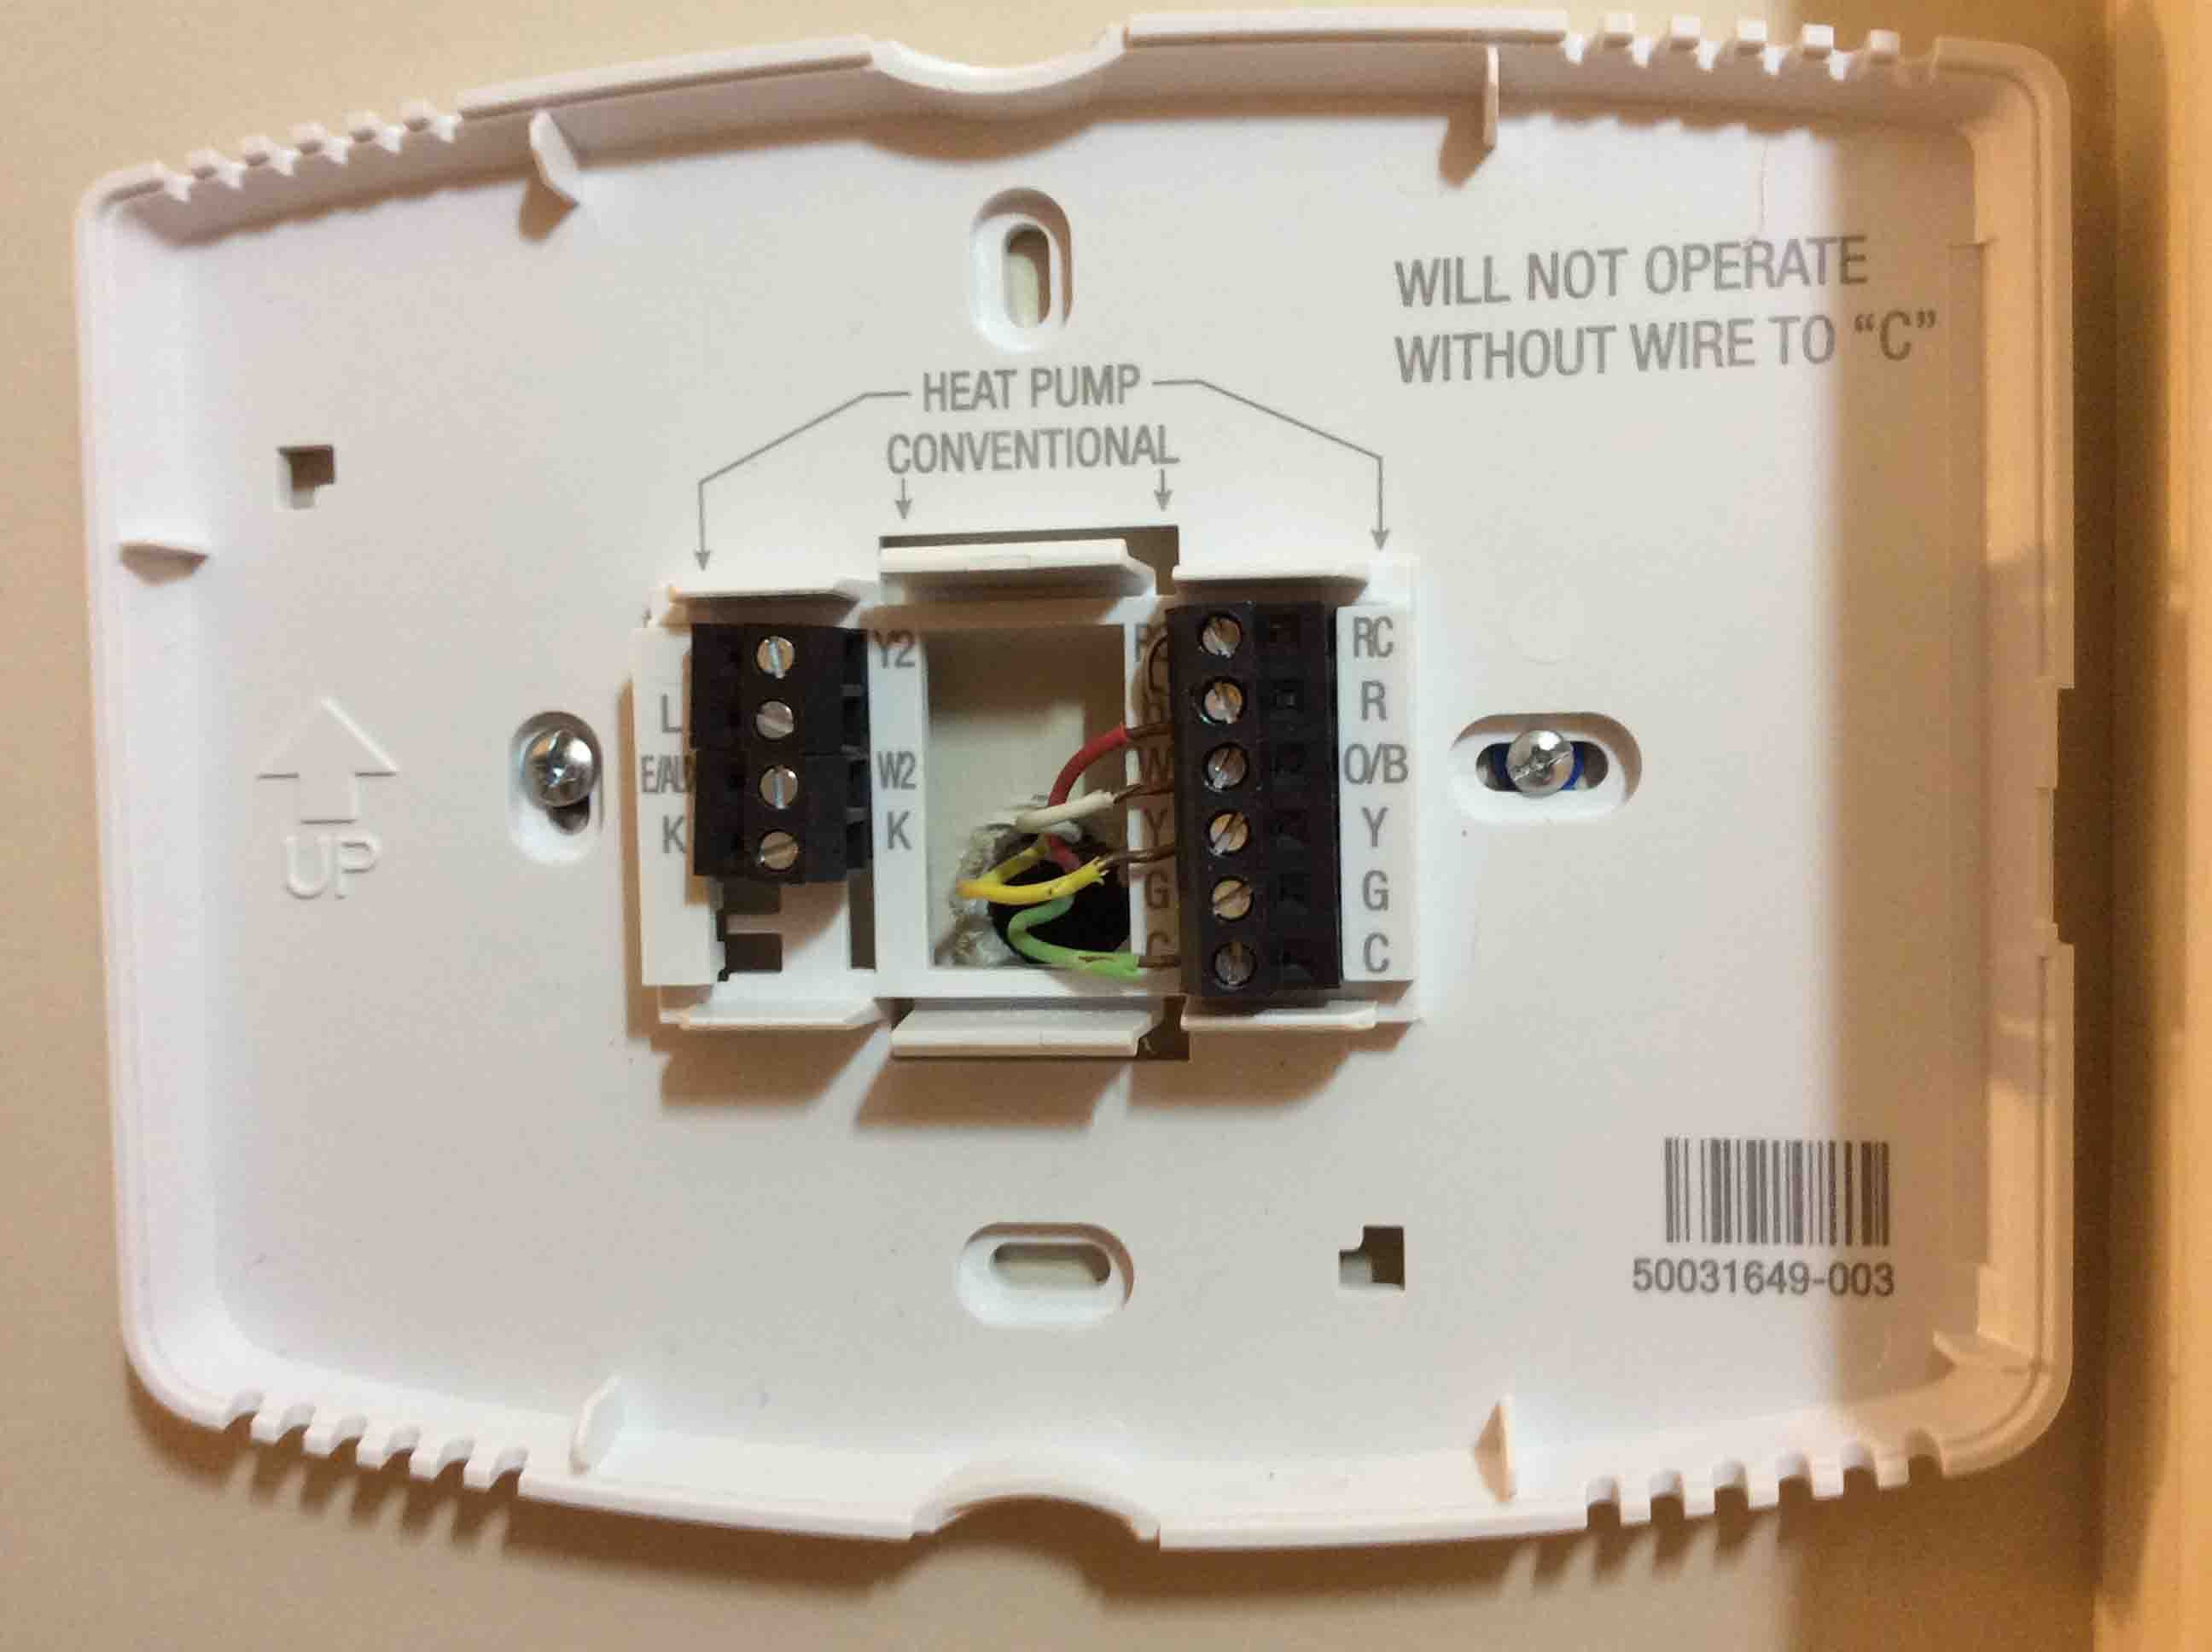 honeywell thermostat wiring diagram 4 wire tom s tek stop rh tomstek us wiring honeywell thermostat wifi how to wire honeywell thermostat wifi